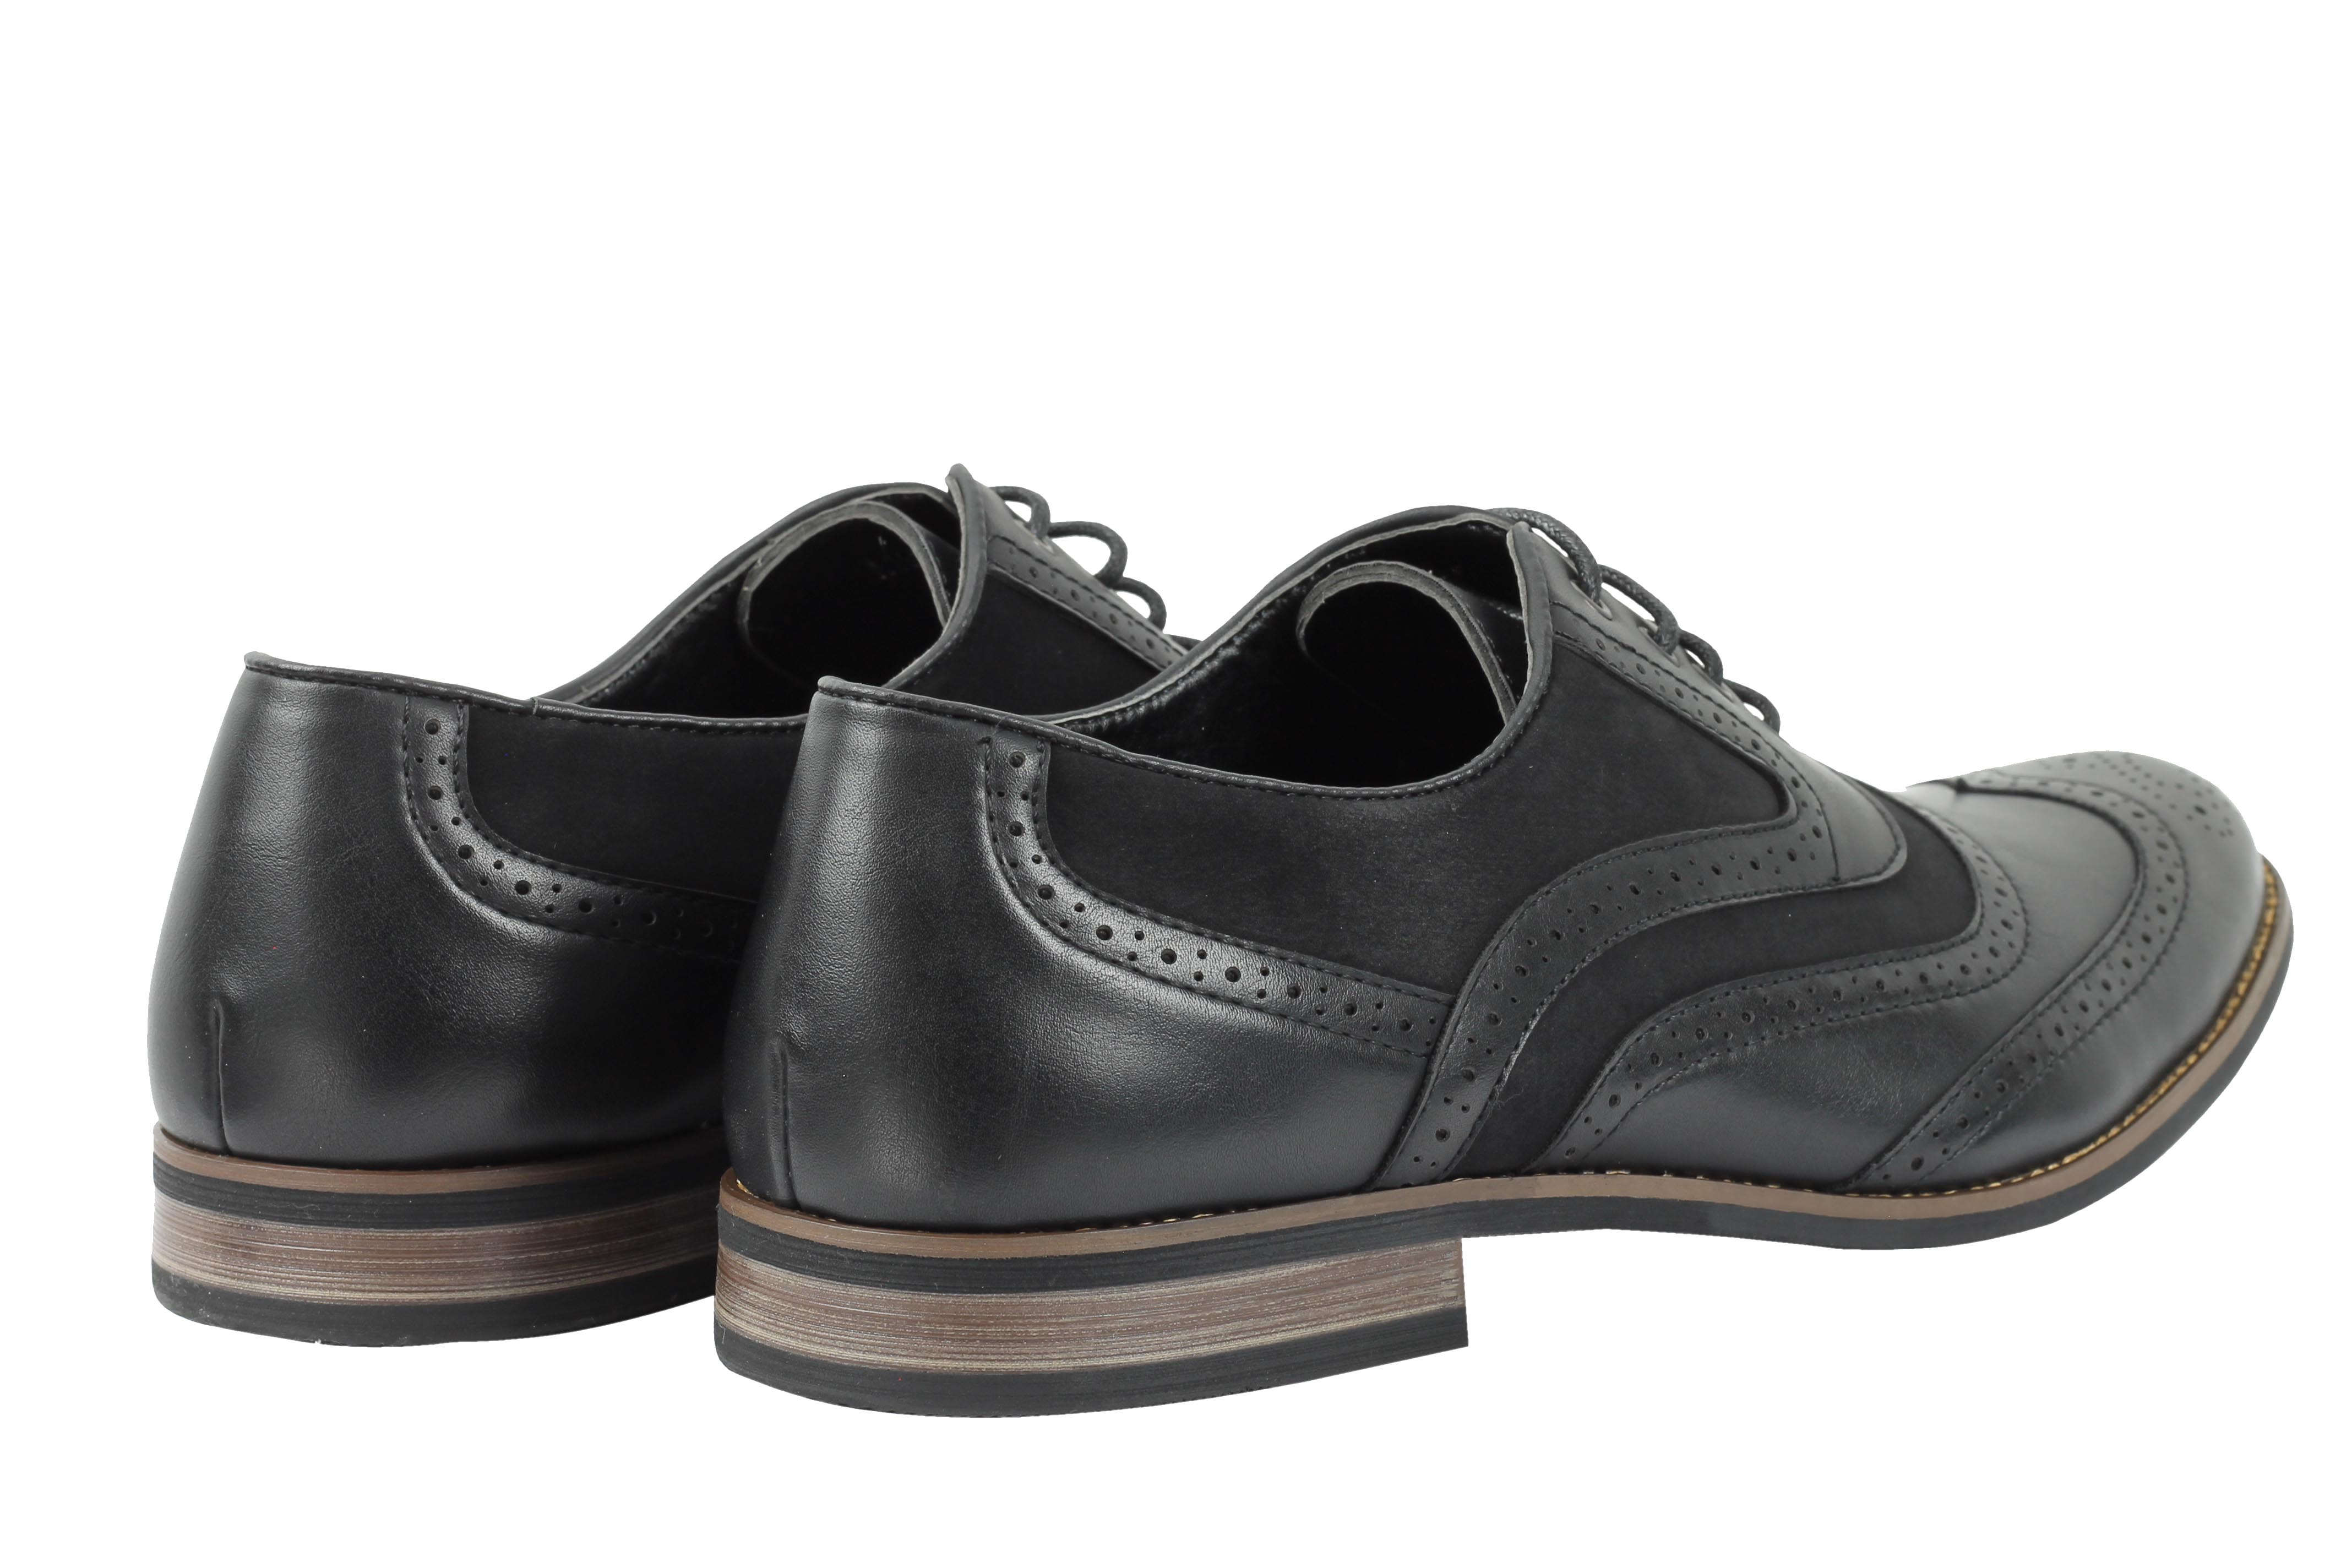 Mens-Retro-Vintage-Wing-Tip-Leather-Brogue-Smart-Casual-Office-Shoes-UK-Sizes thumbnail 6